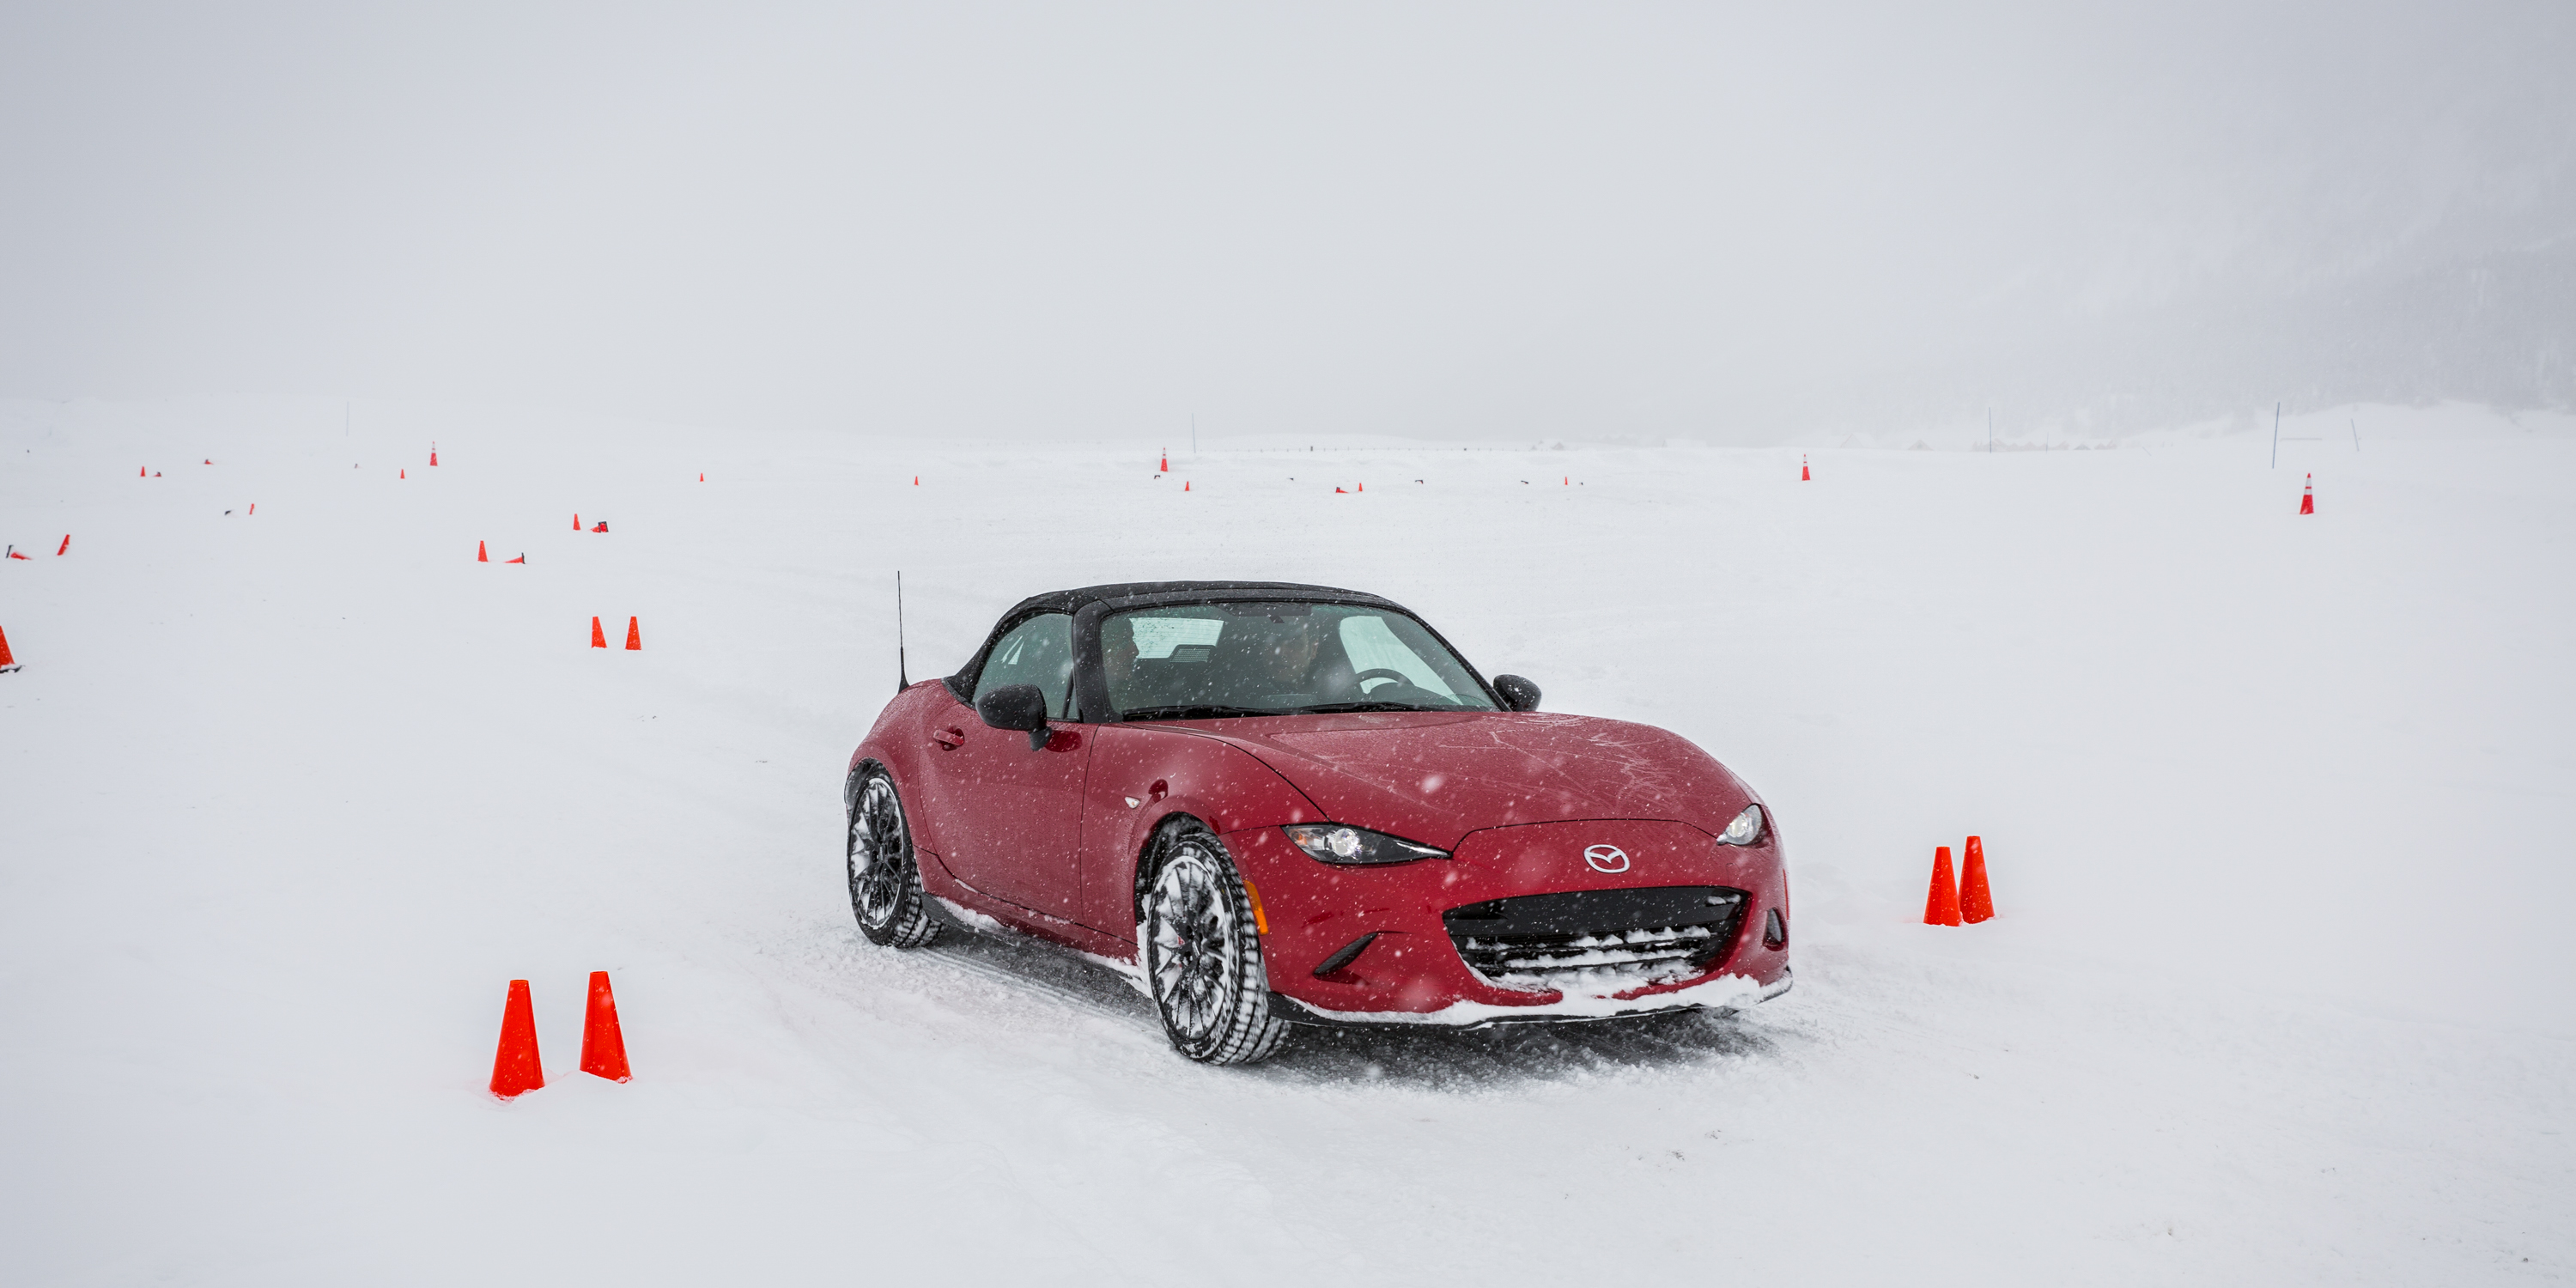 Original 2016 Mazda Ice Academy  Crested Butte Colorado  Photos